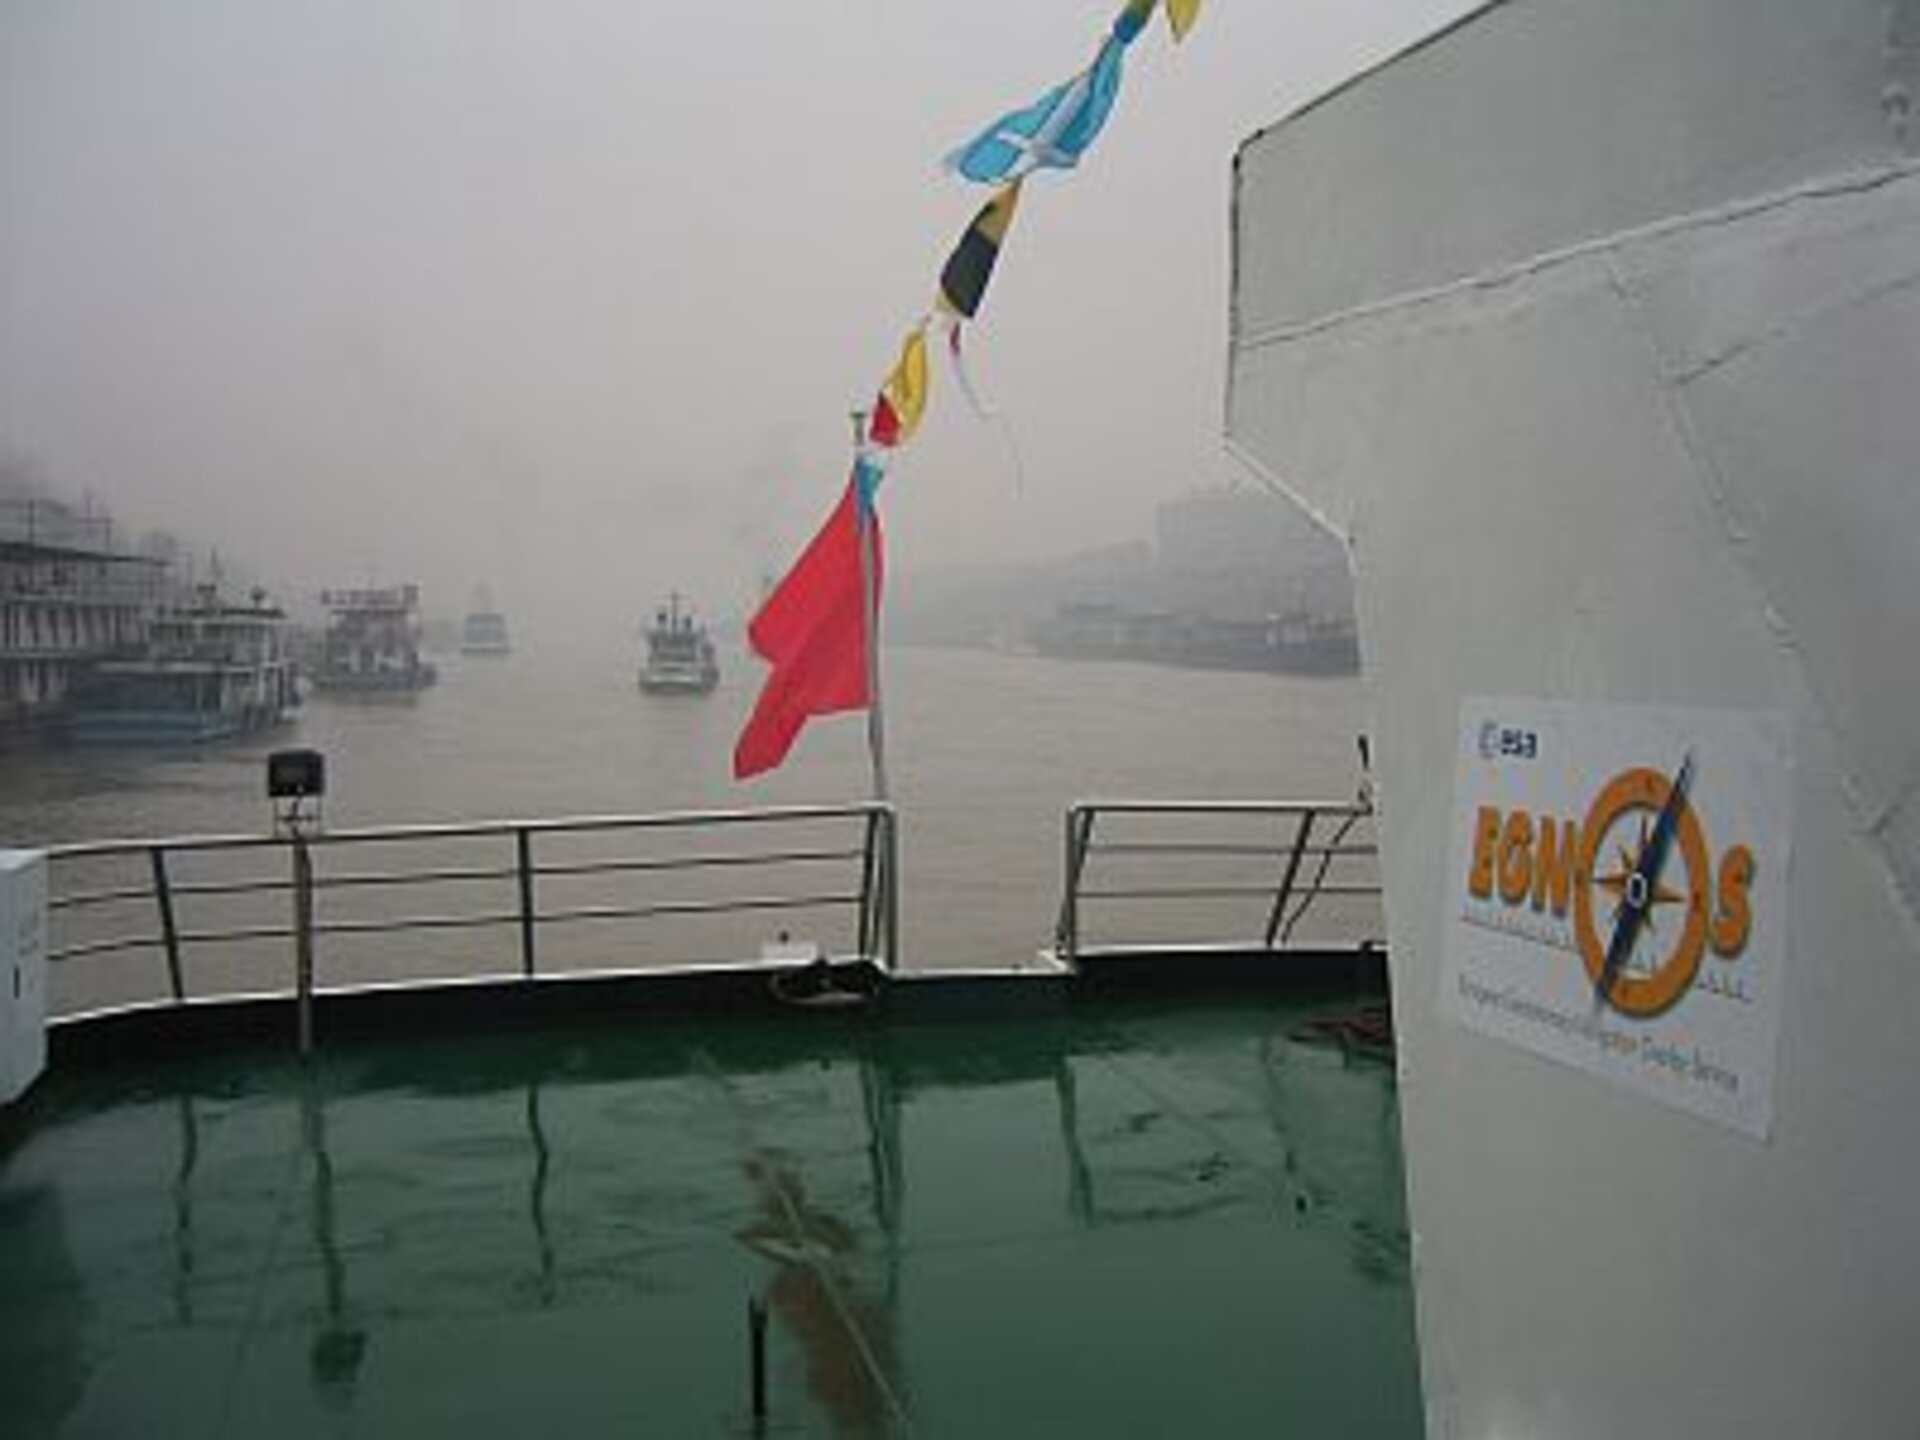 EGNOS trials on the River Yangtze